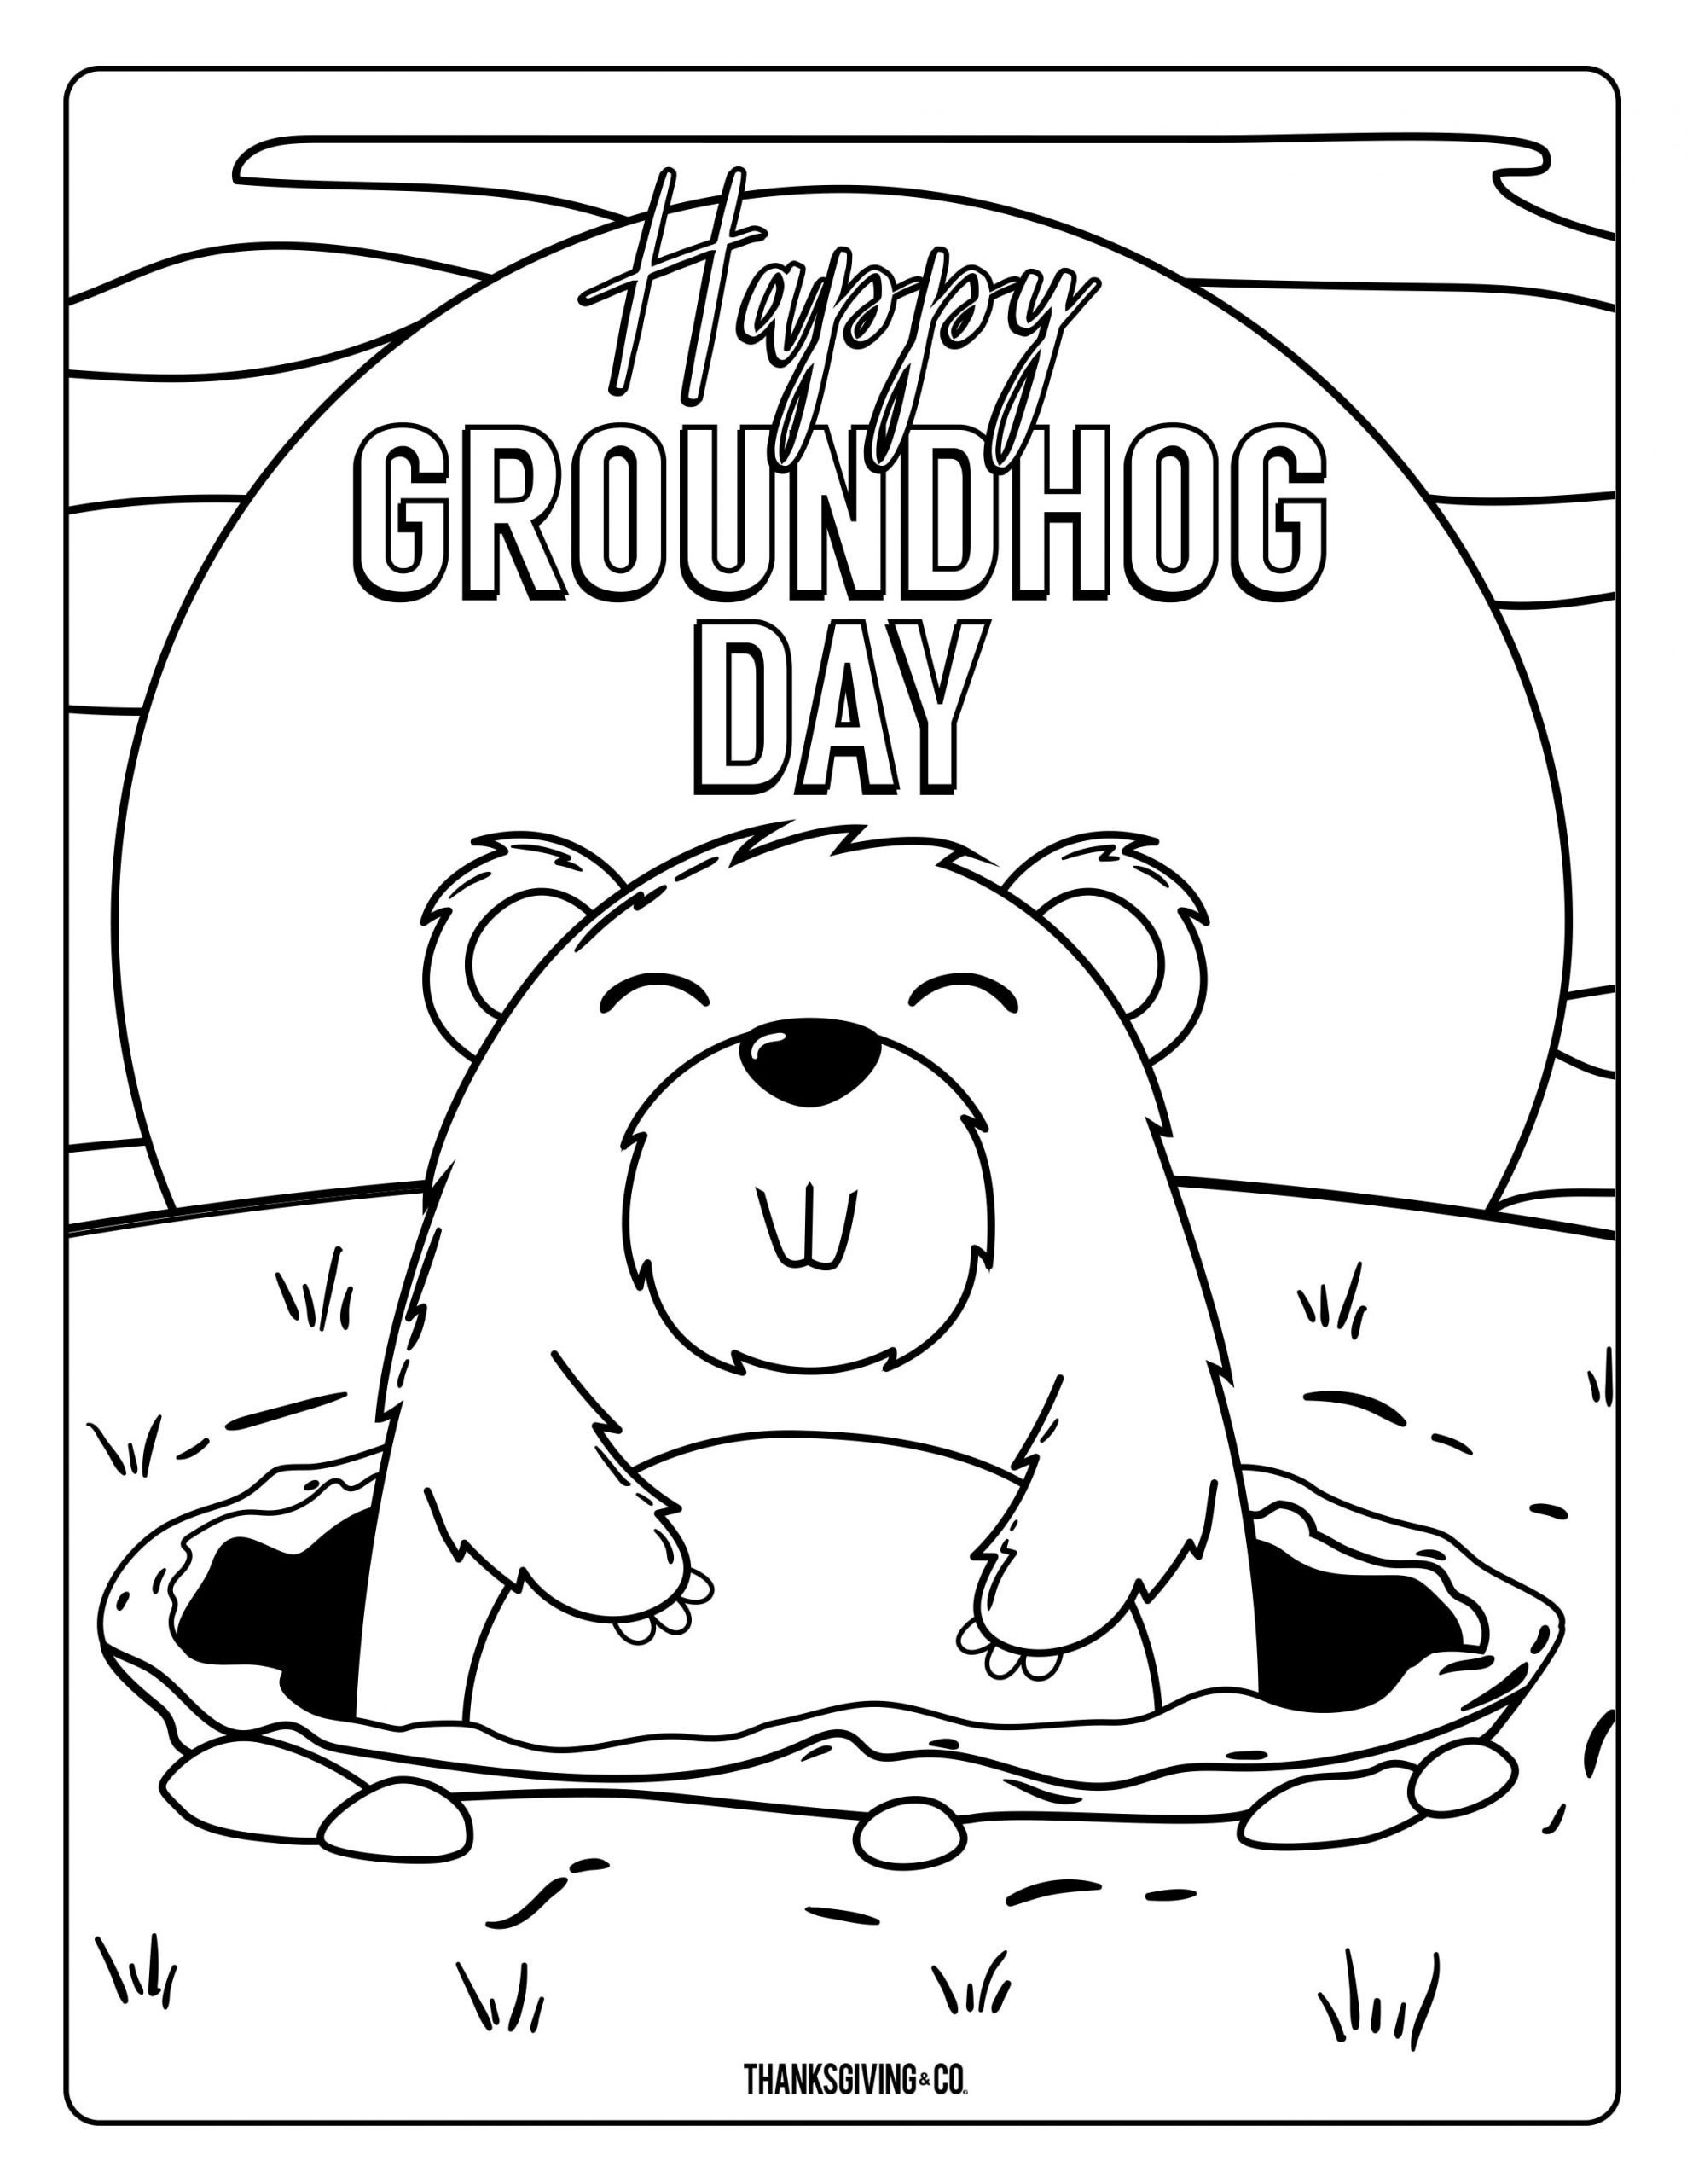 groundhog coloring pages best of 4 adorable groundhog day coloring pages for kids 2